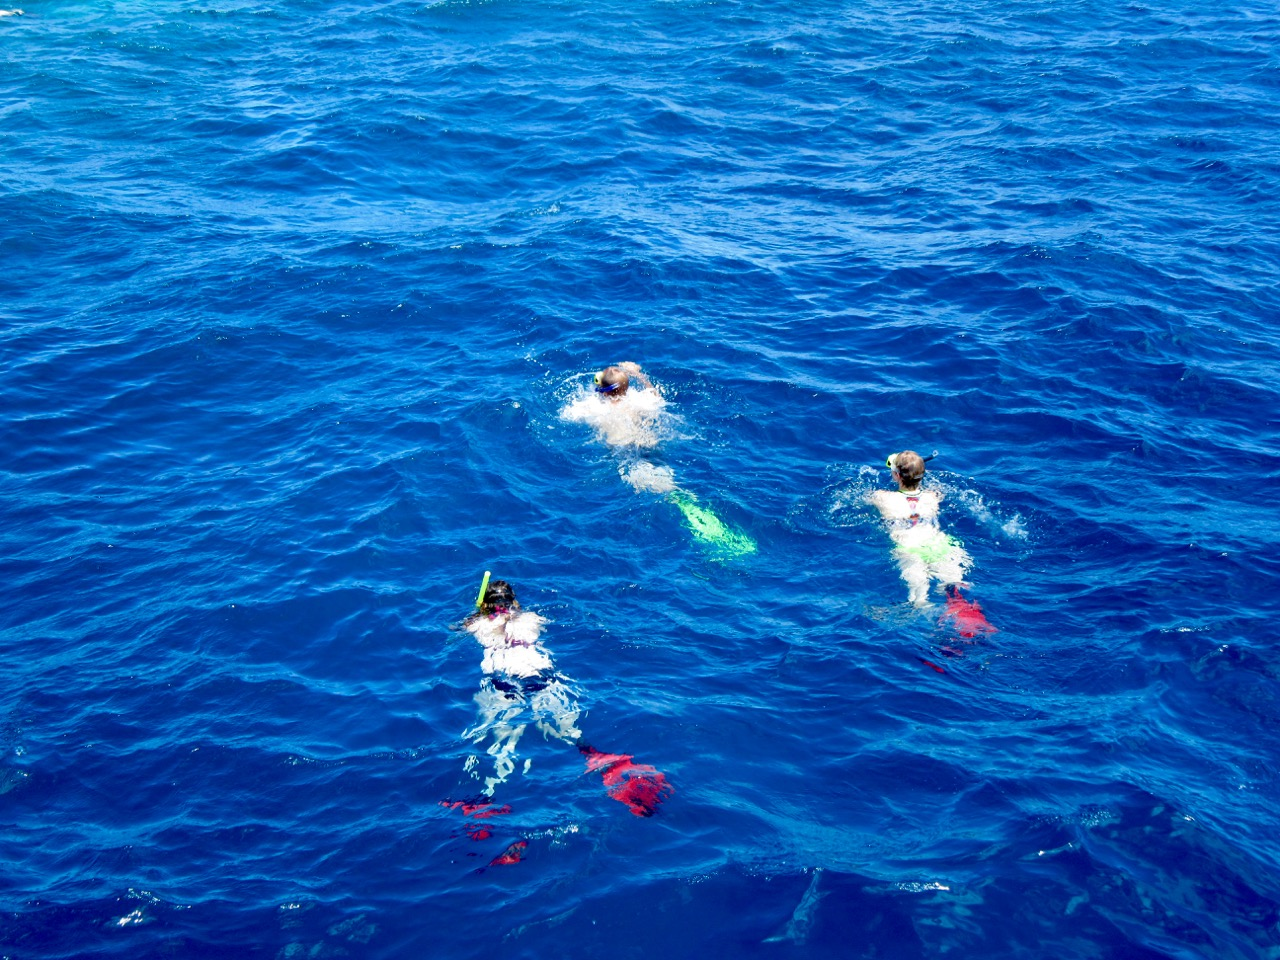 Matthew, Patricia and I snorkeling.